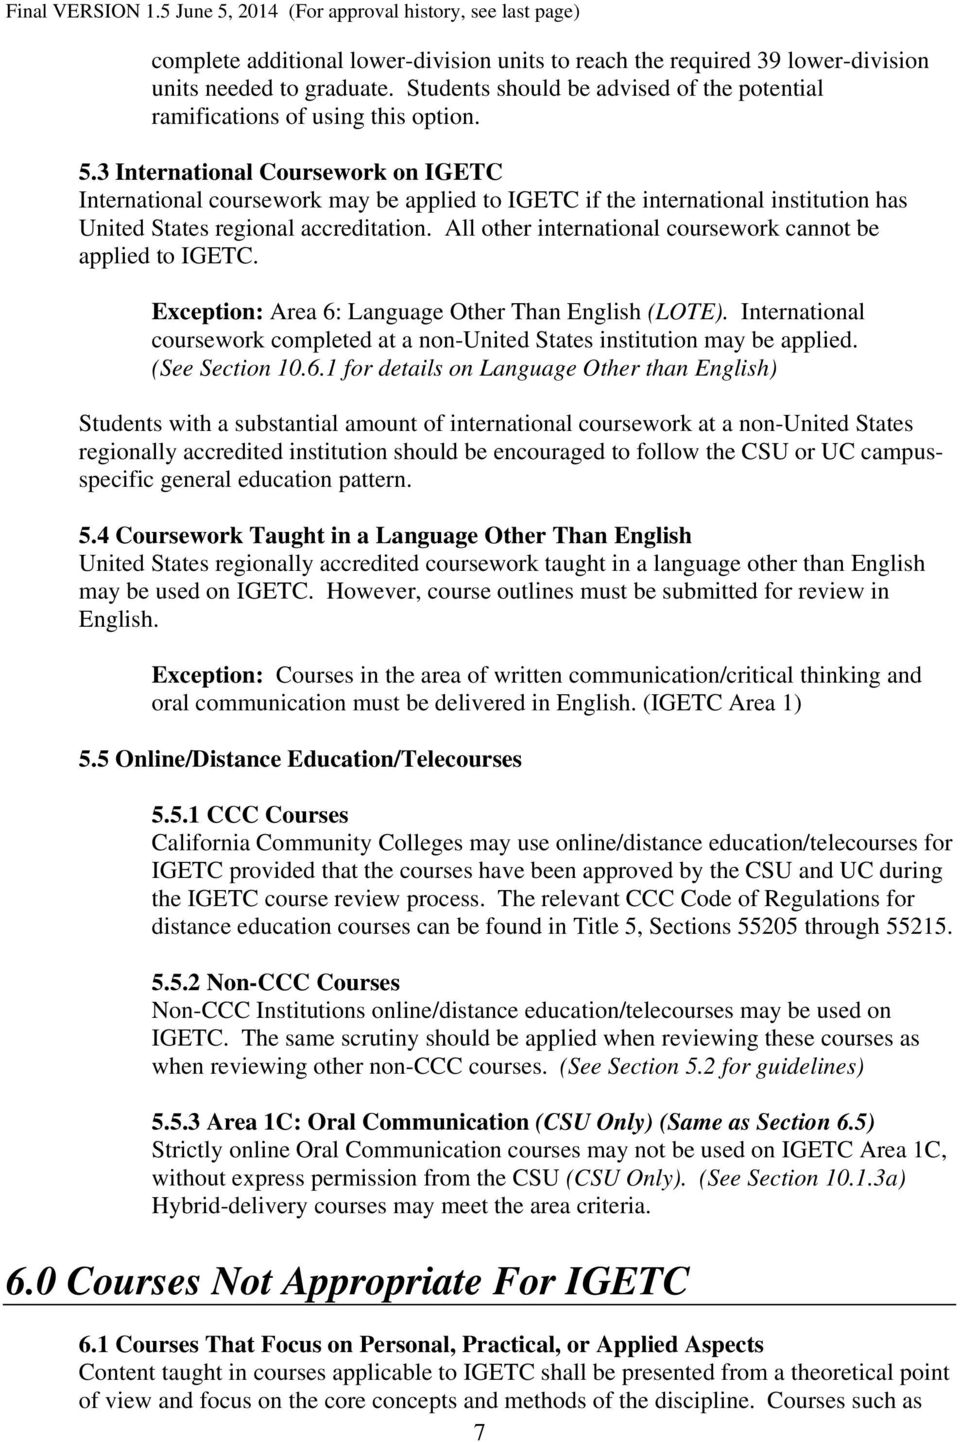 All other international coursework cannot be applied to IGETC. Exception: Area 6: Language Other Than English (LOTE).